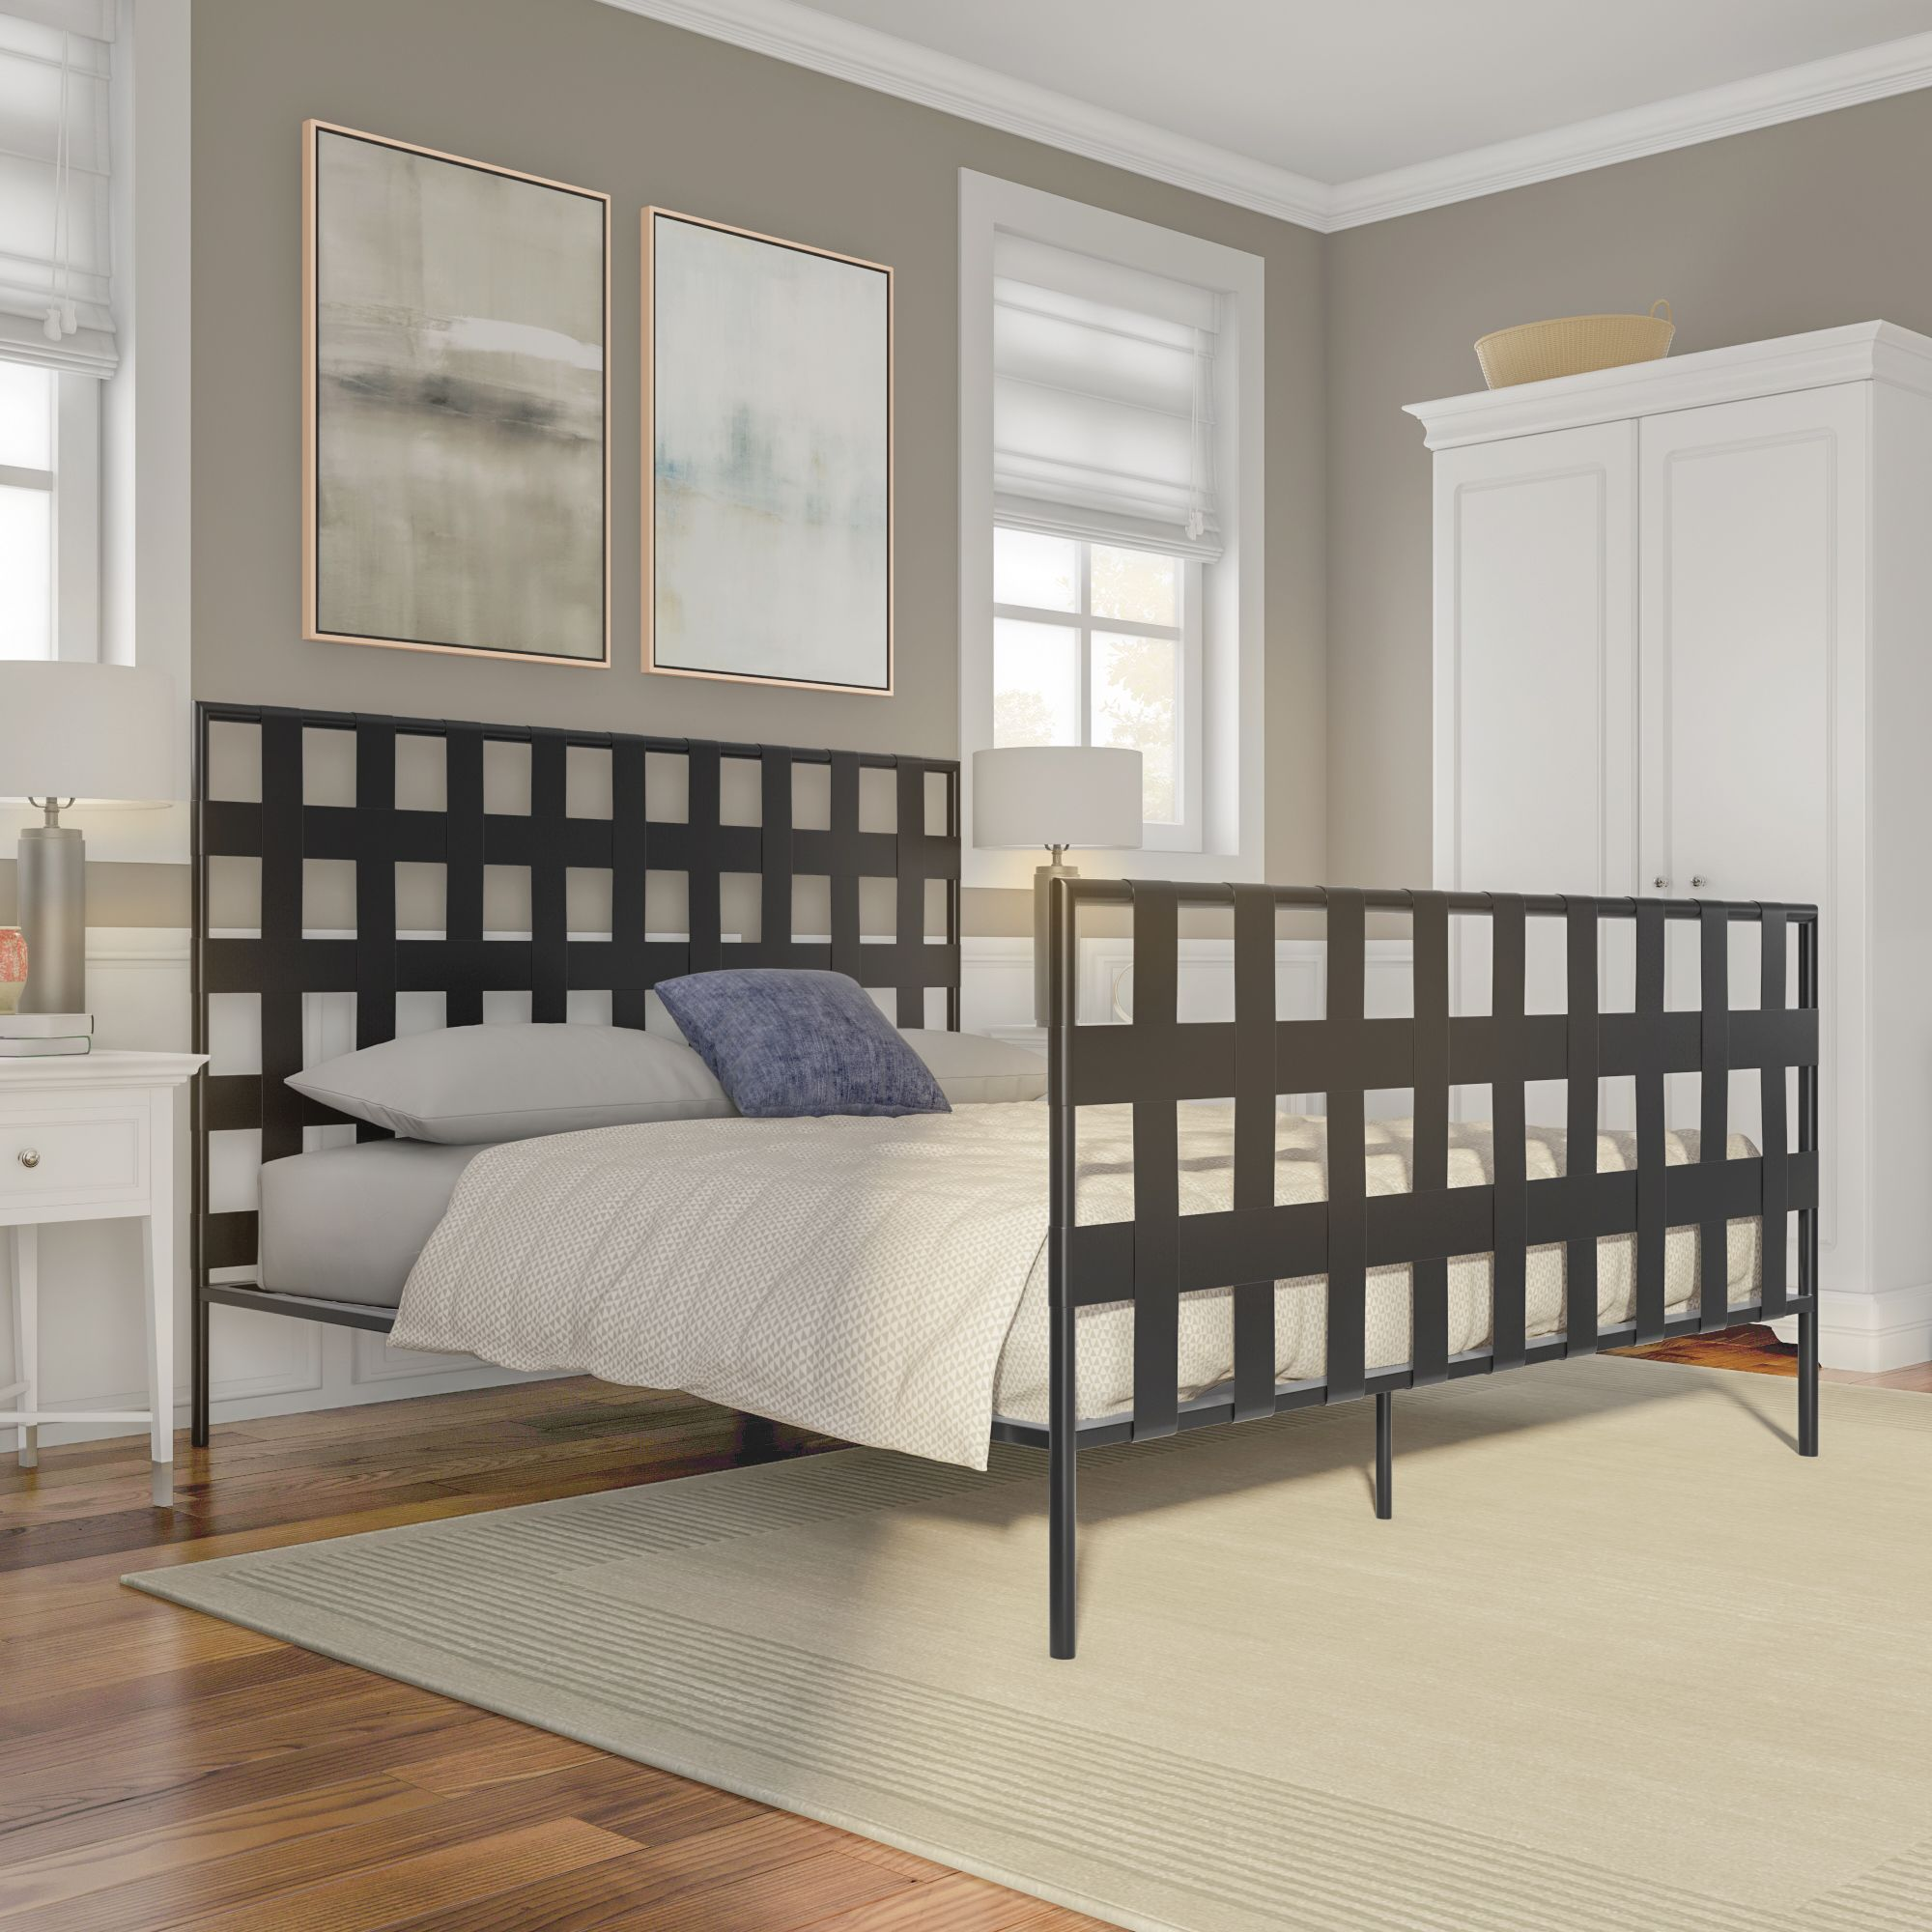 Home Furniture of america, Industrial platform beds